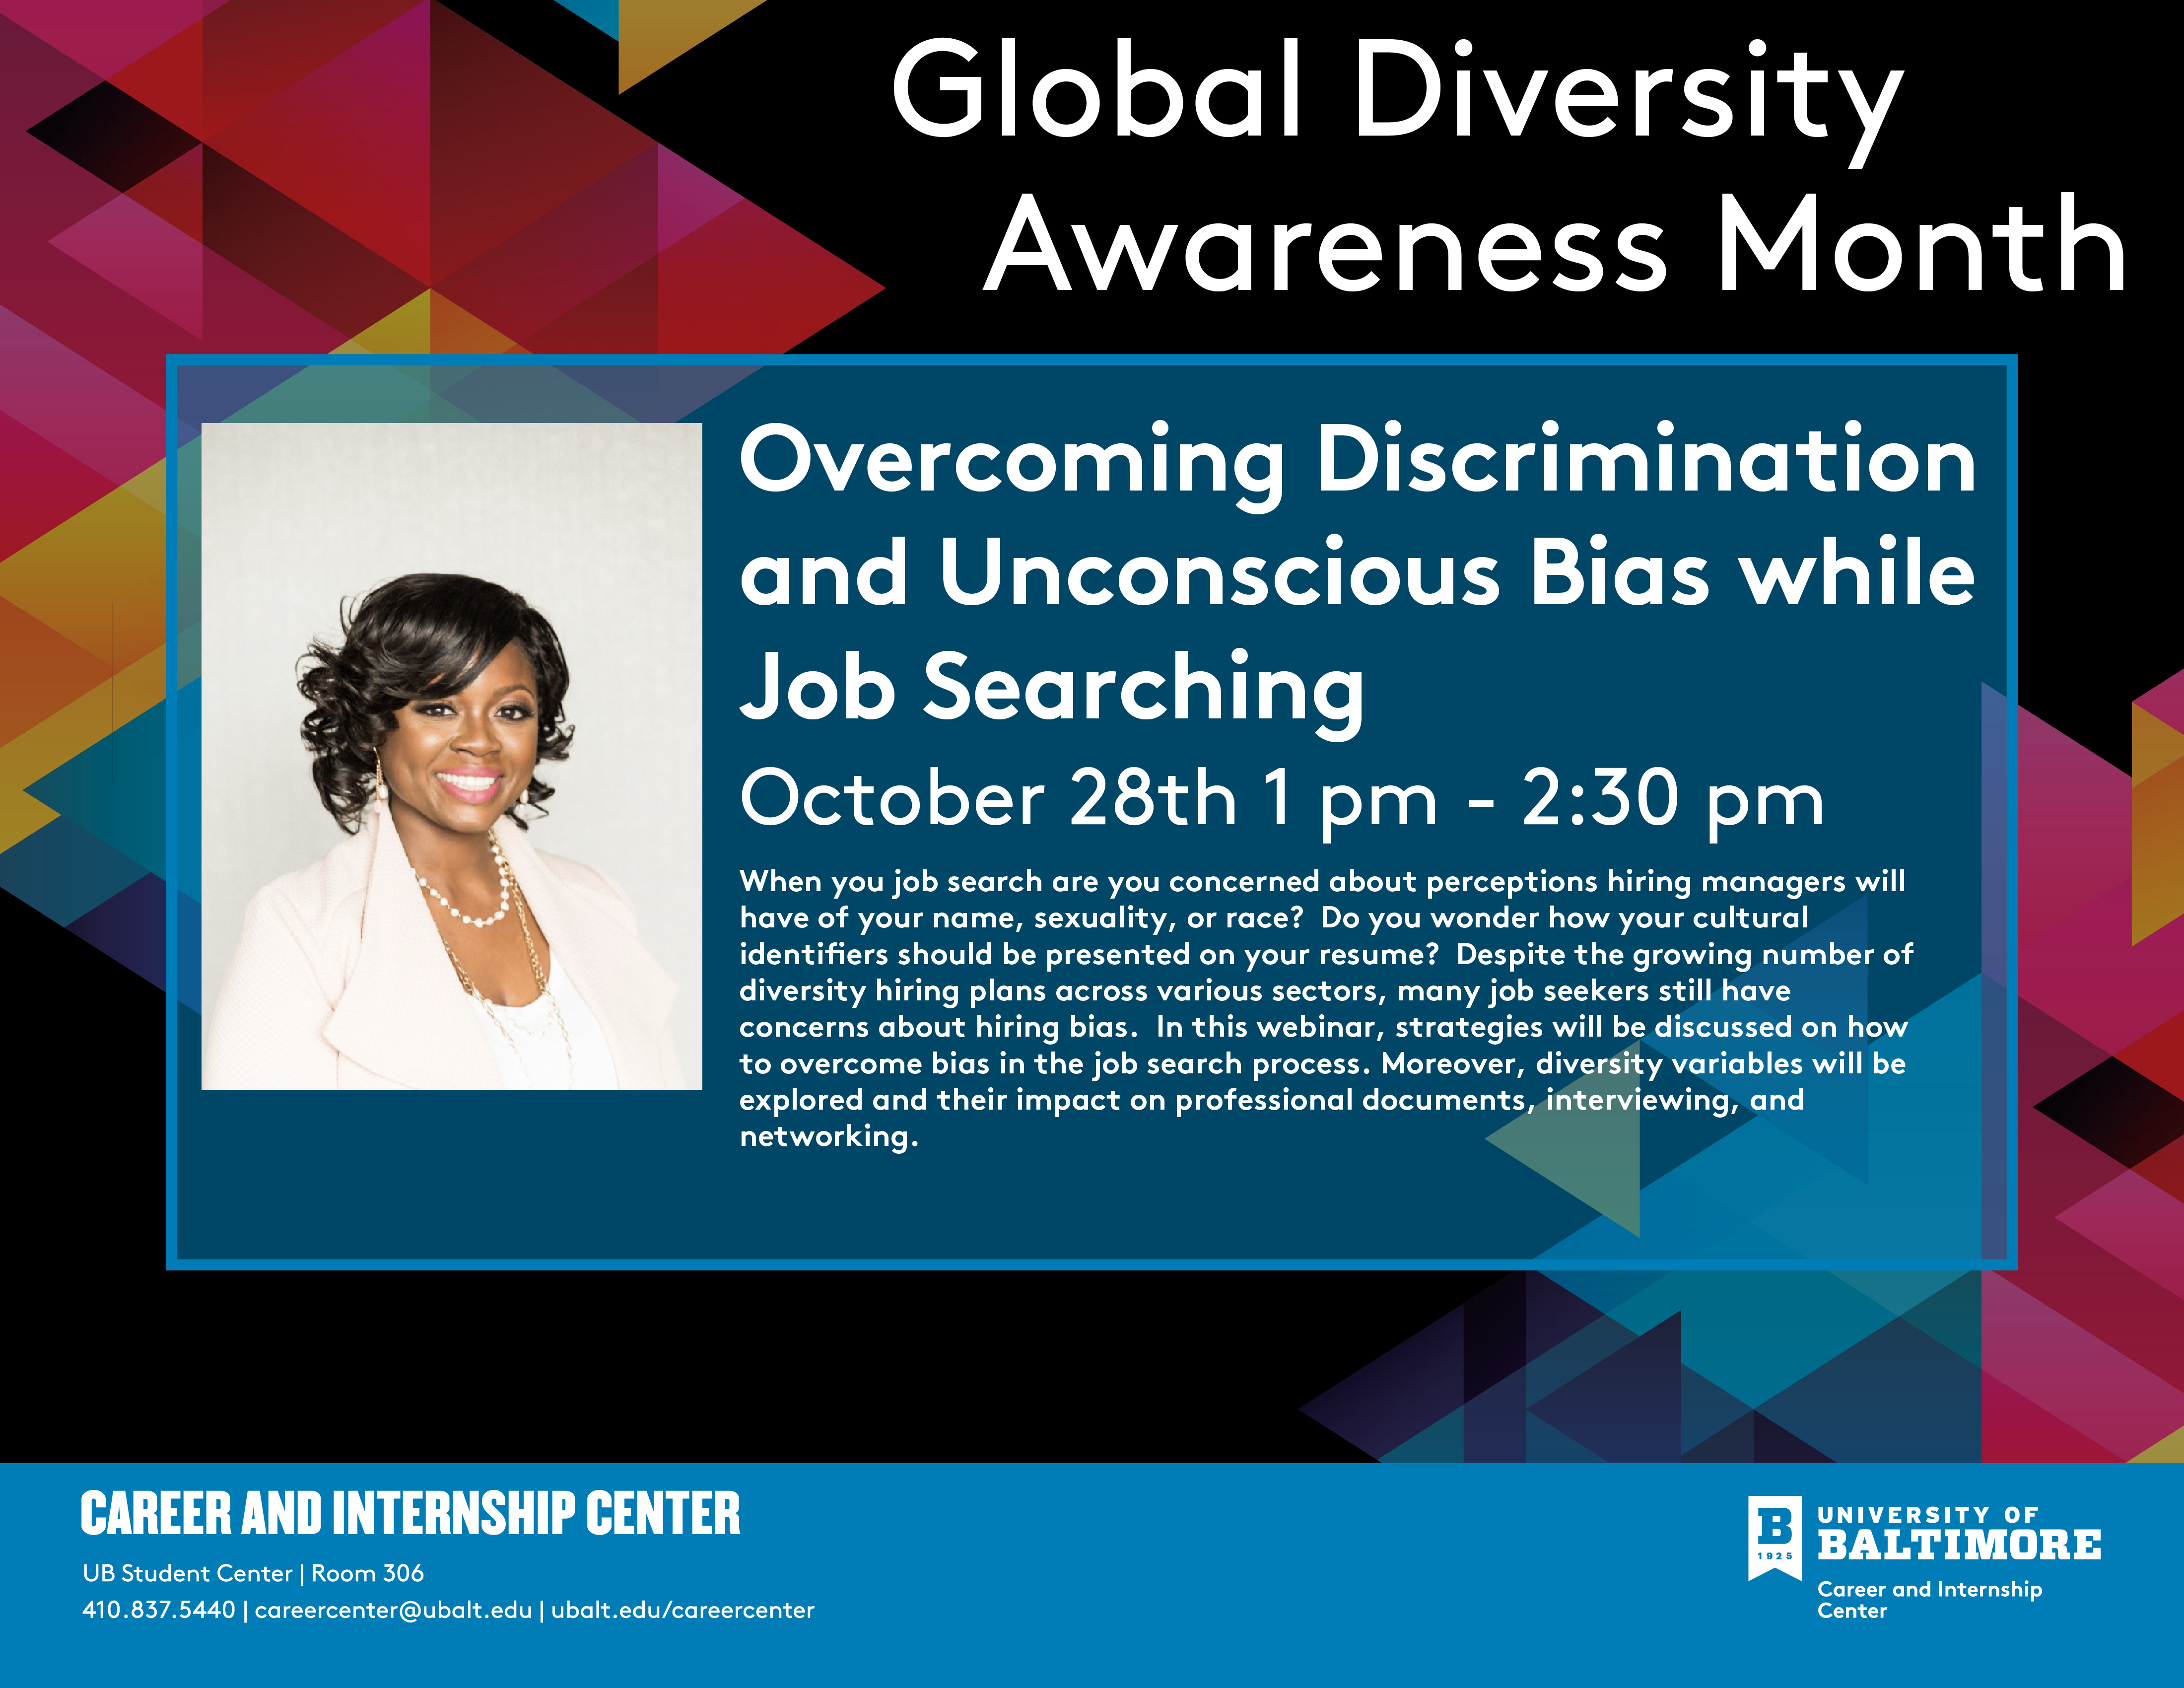 Overcoming Discrimination and Unconscious Bias while Job Searching